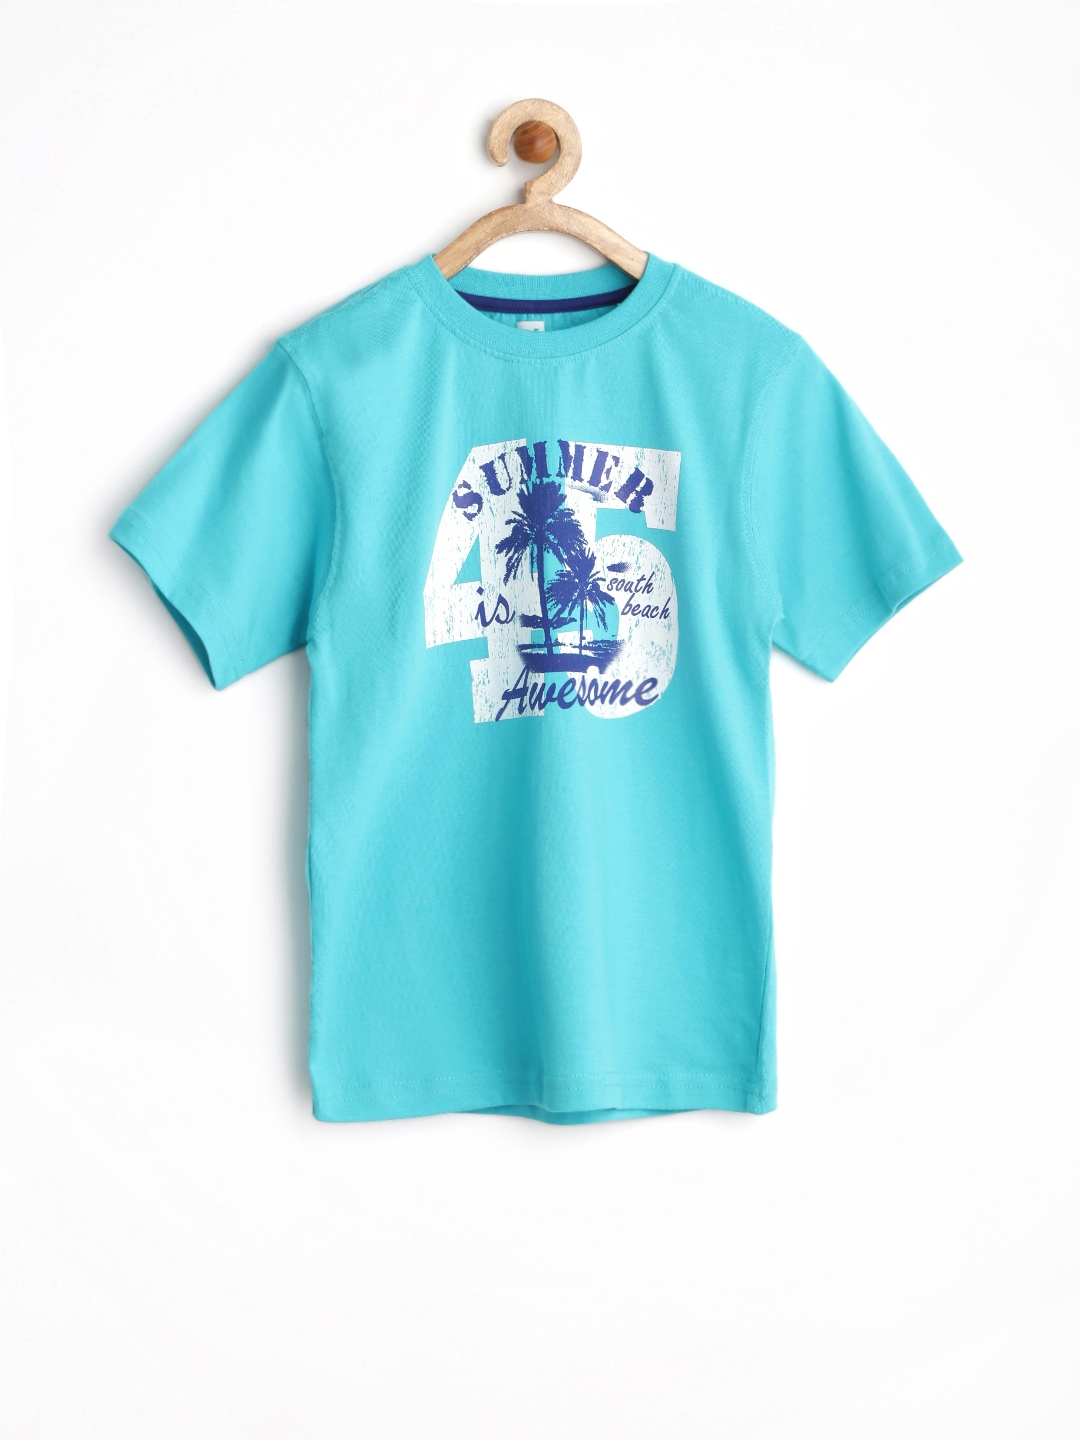 Myntra 612 league boys turquoise blue printed t shirt for Boys printed t shirts